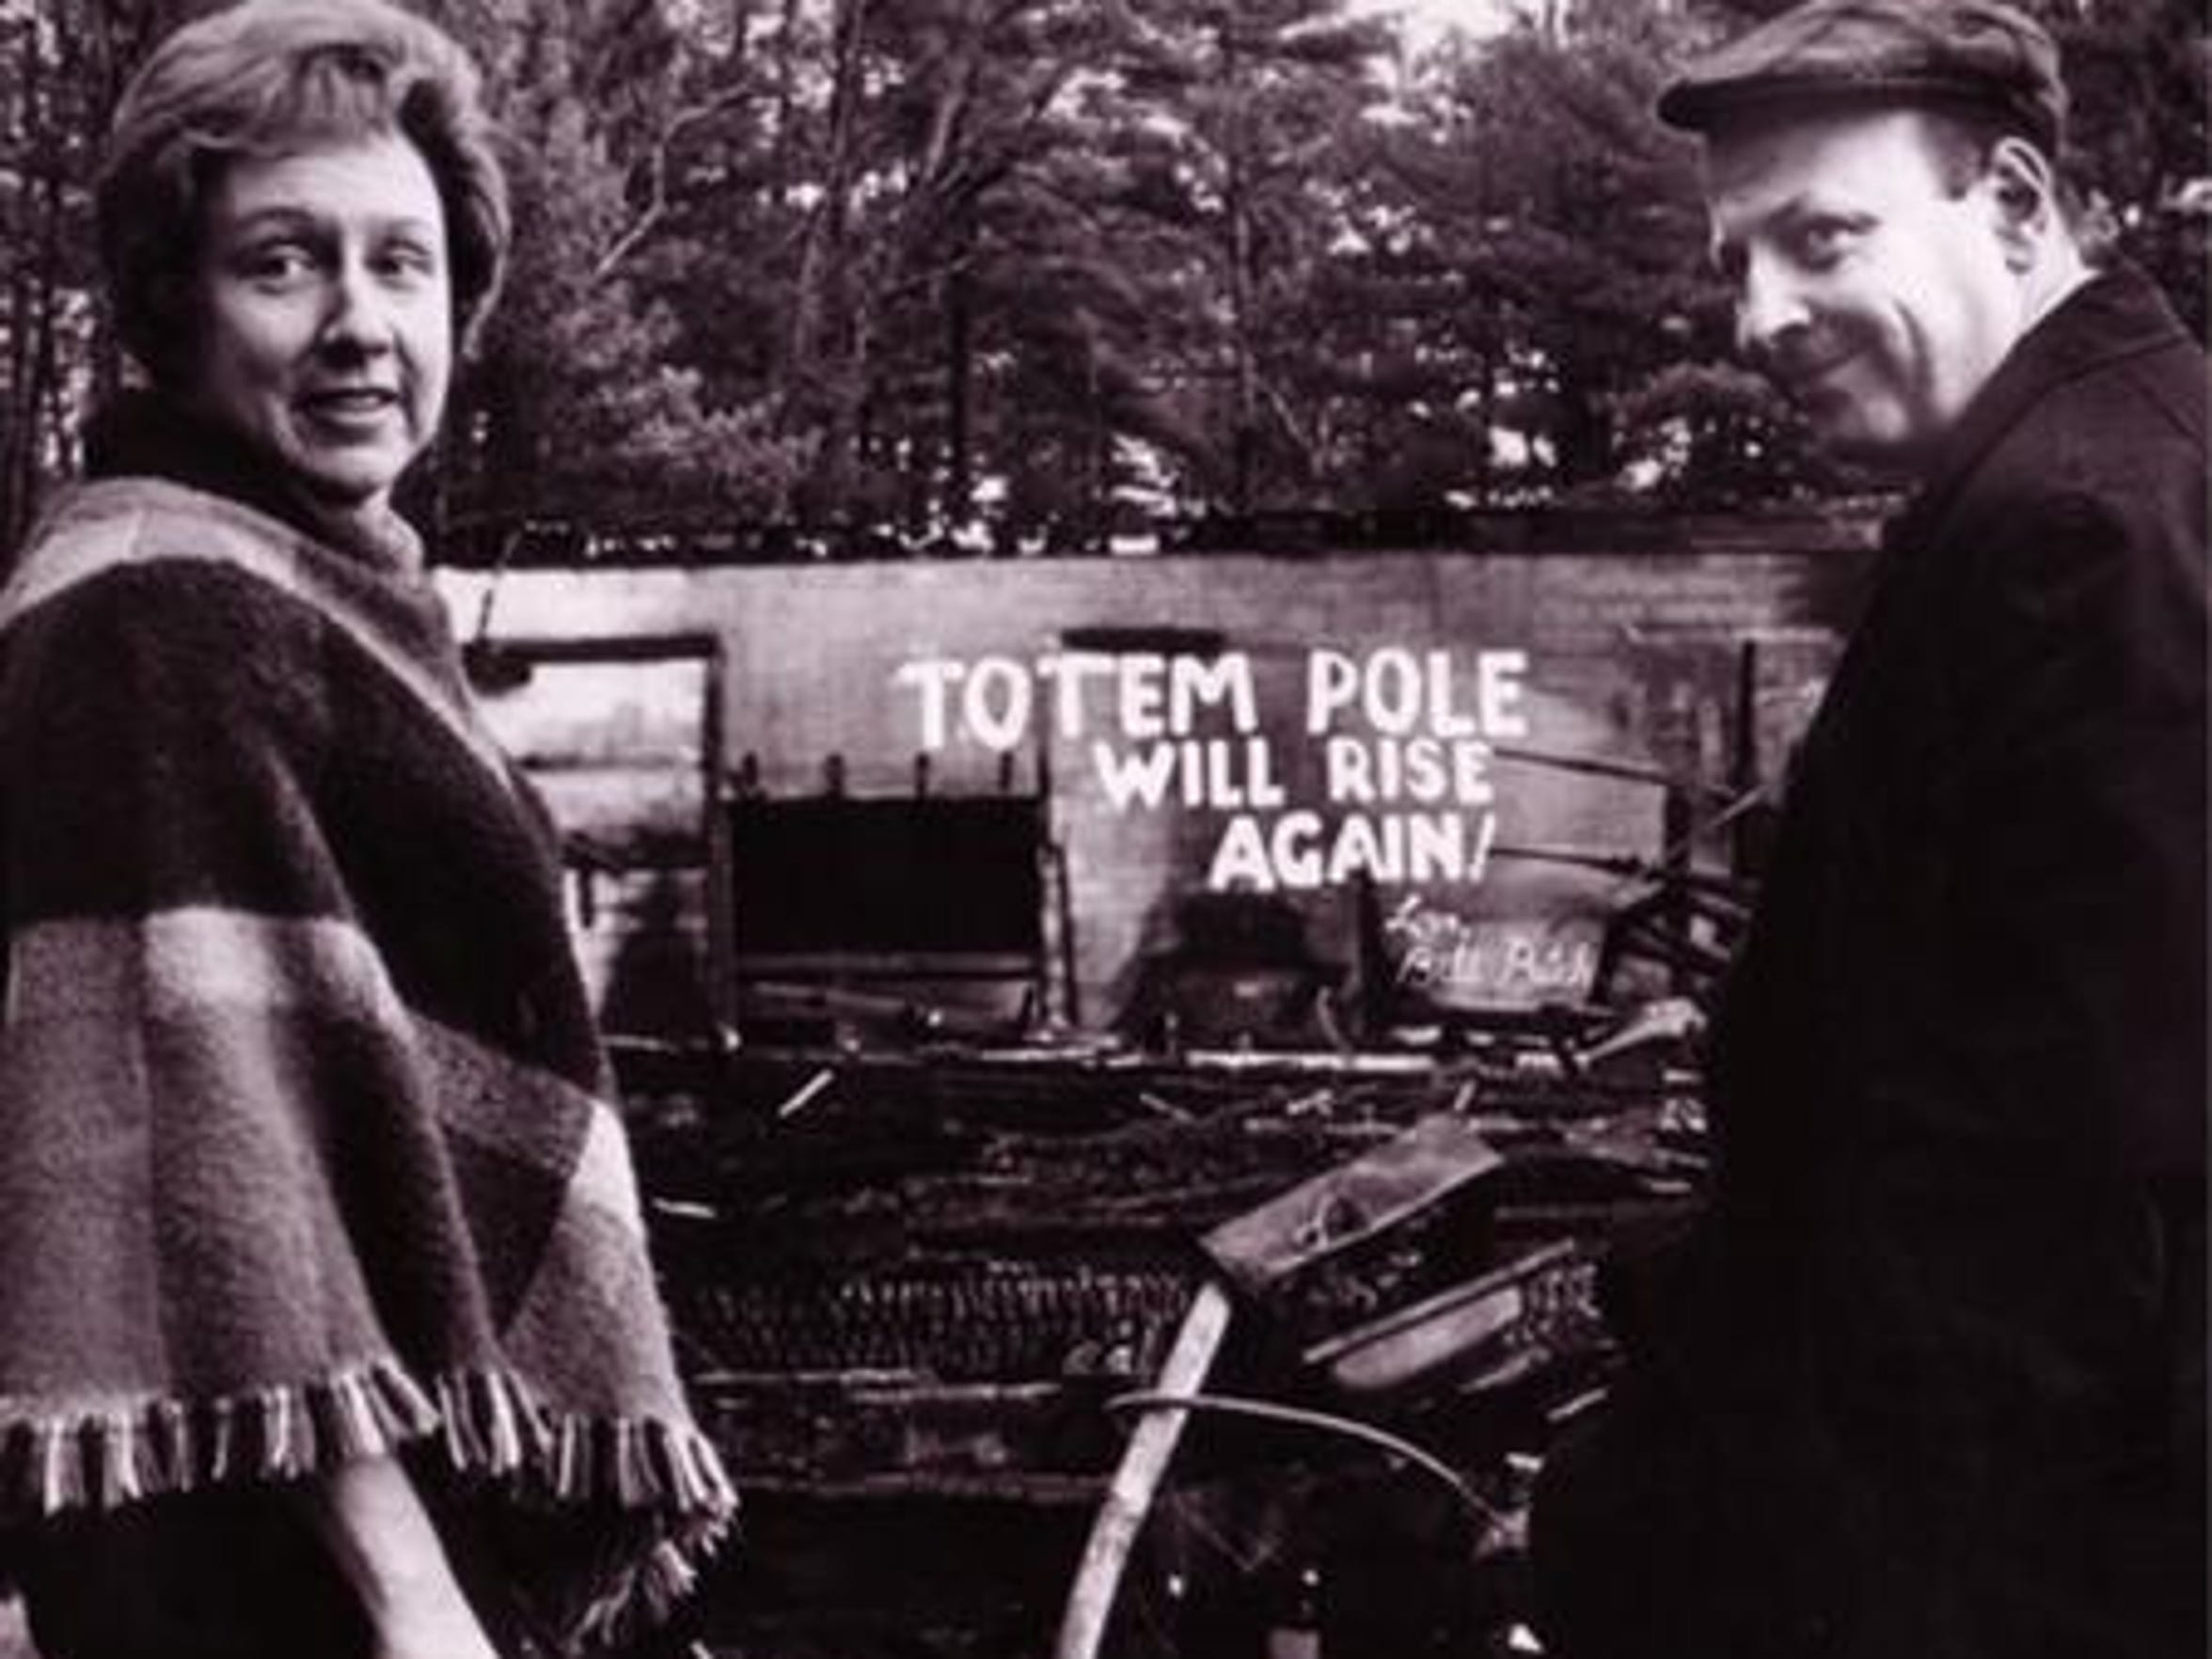 Jean Stapletown and William Putch at the ruins of the Totem Pole Playhouse after the 1969 fire.